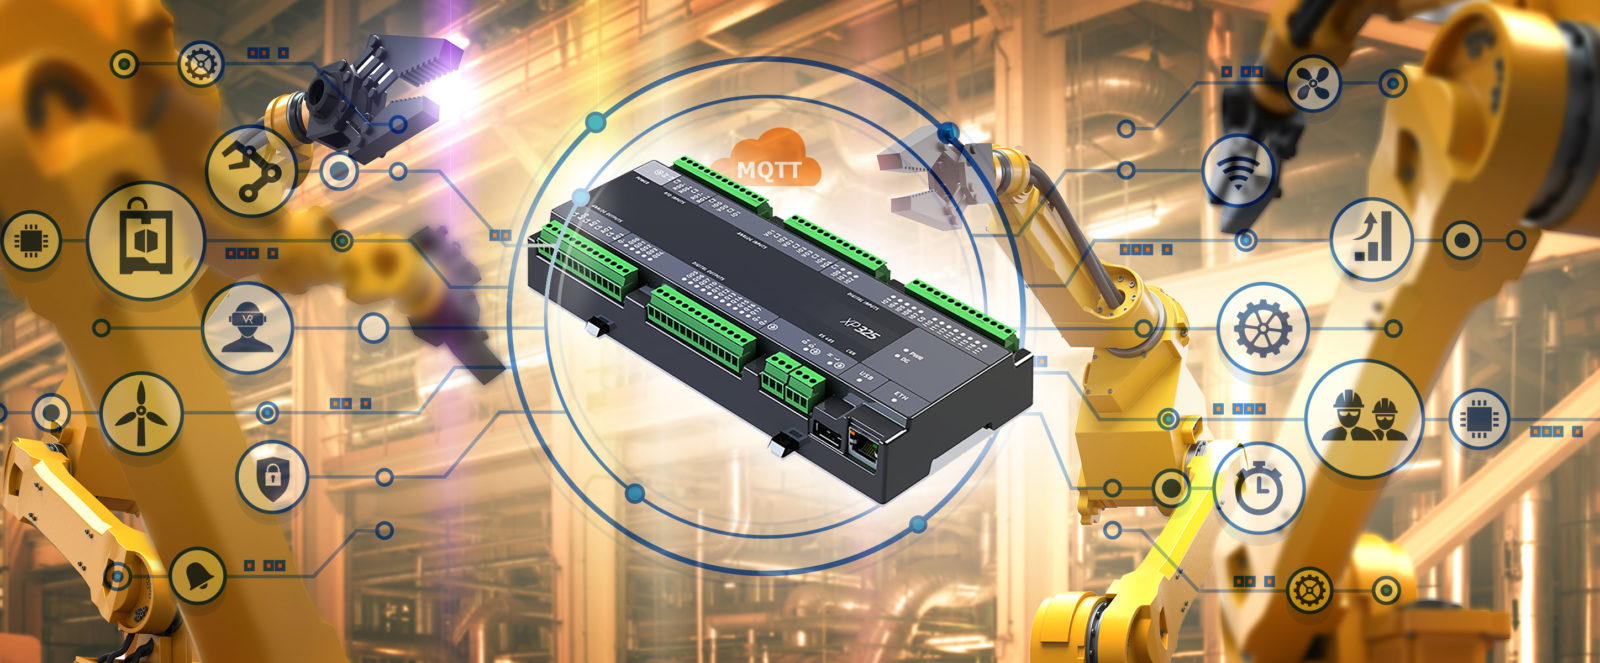 NX-ERA unleashes the power of IIoT with MQTT Interface